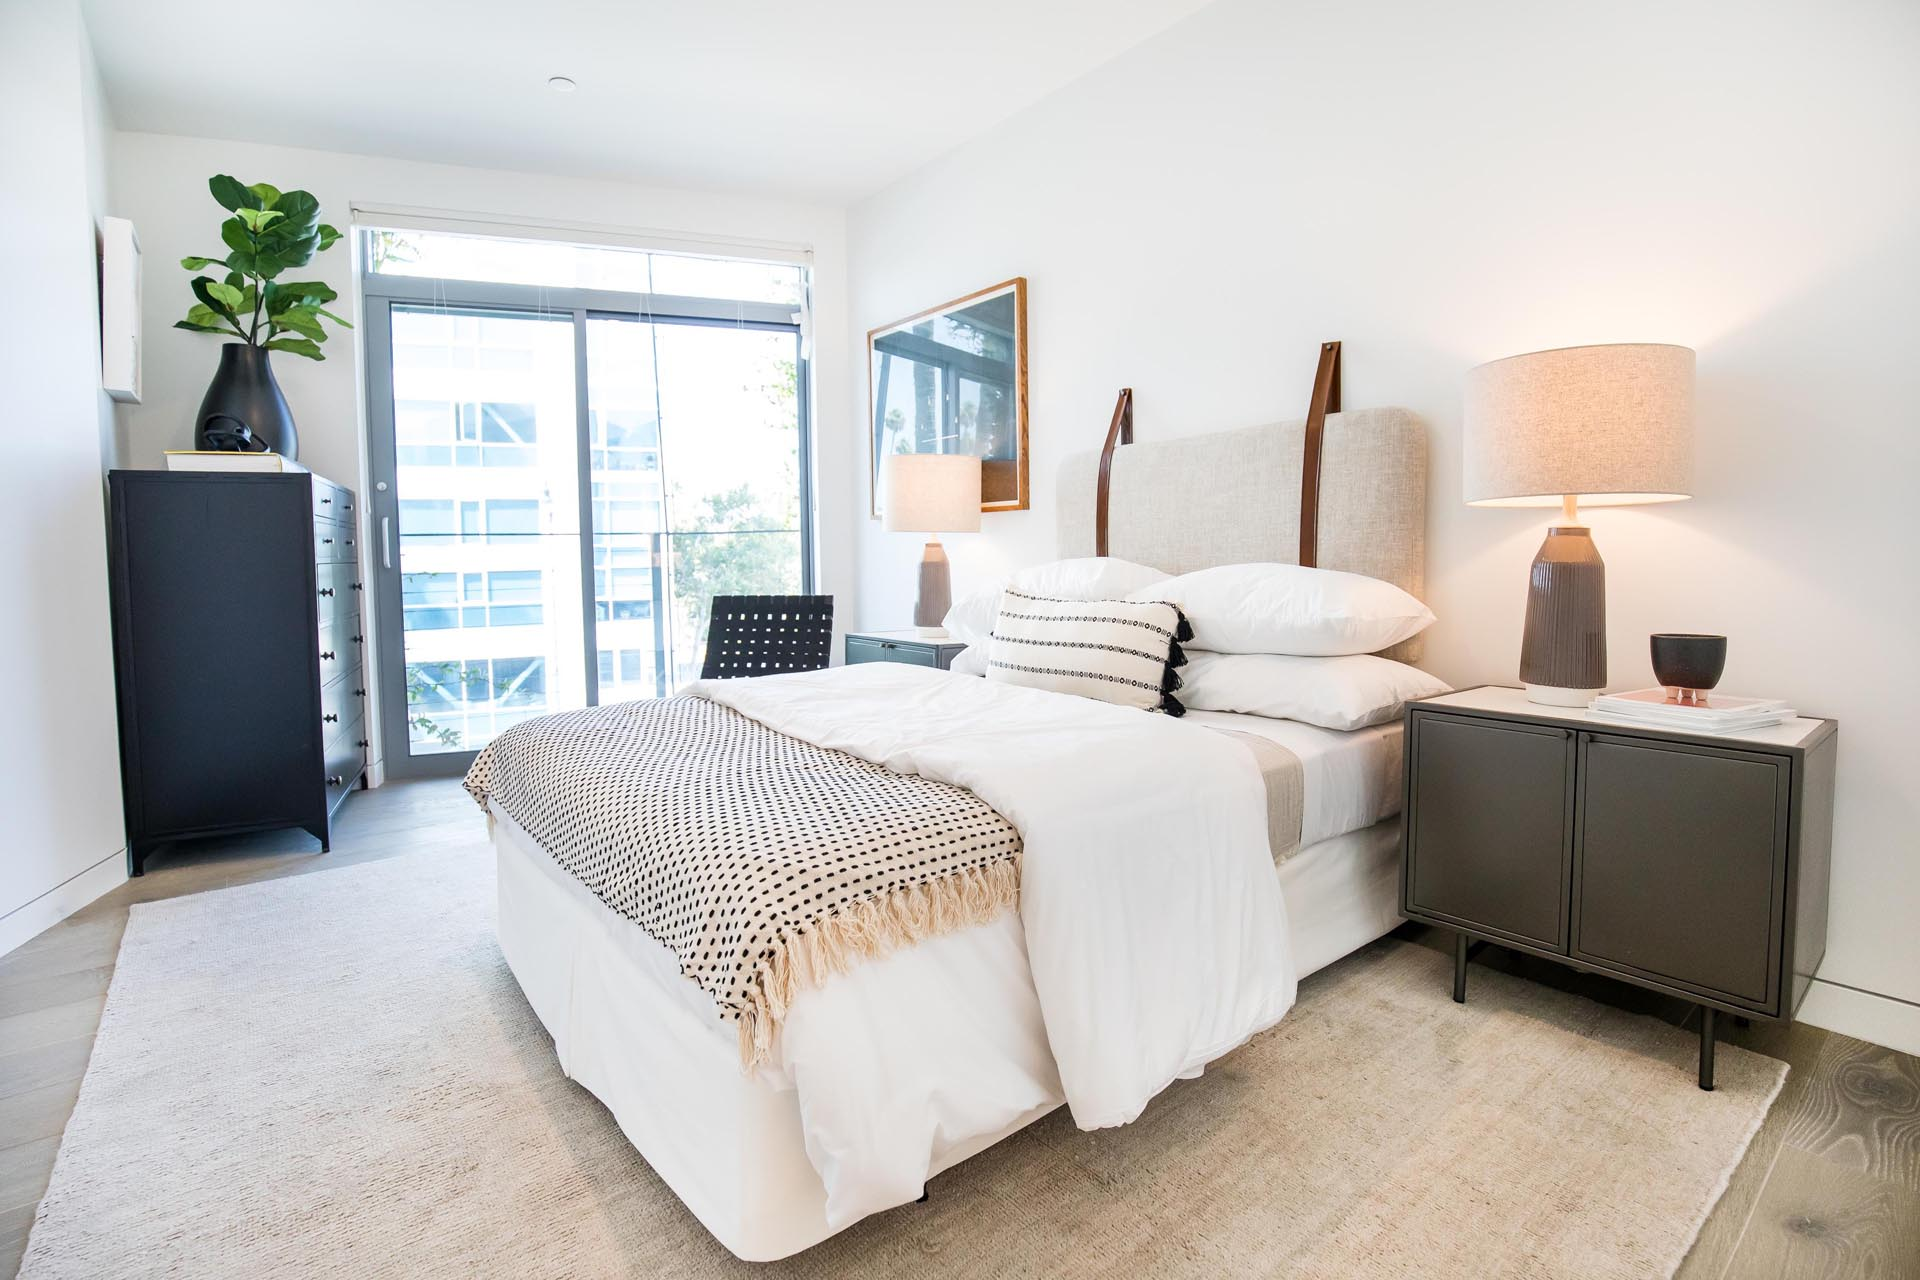 A modern bedroom with a wall mounted headboard.